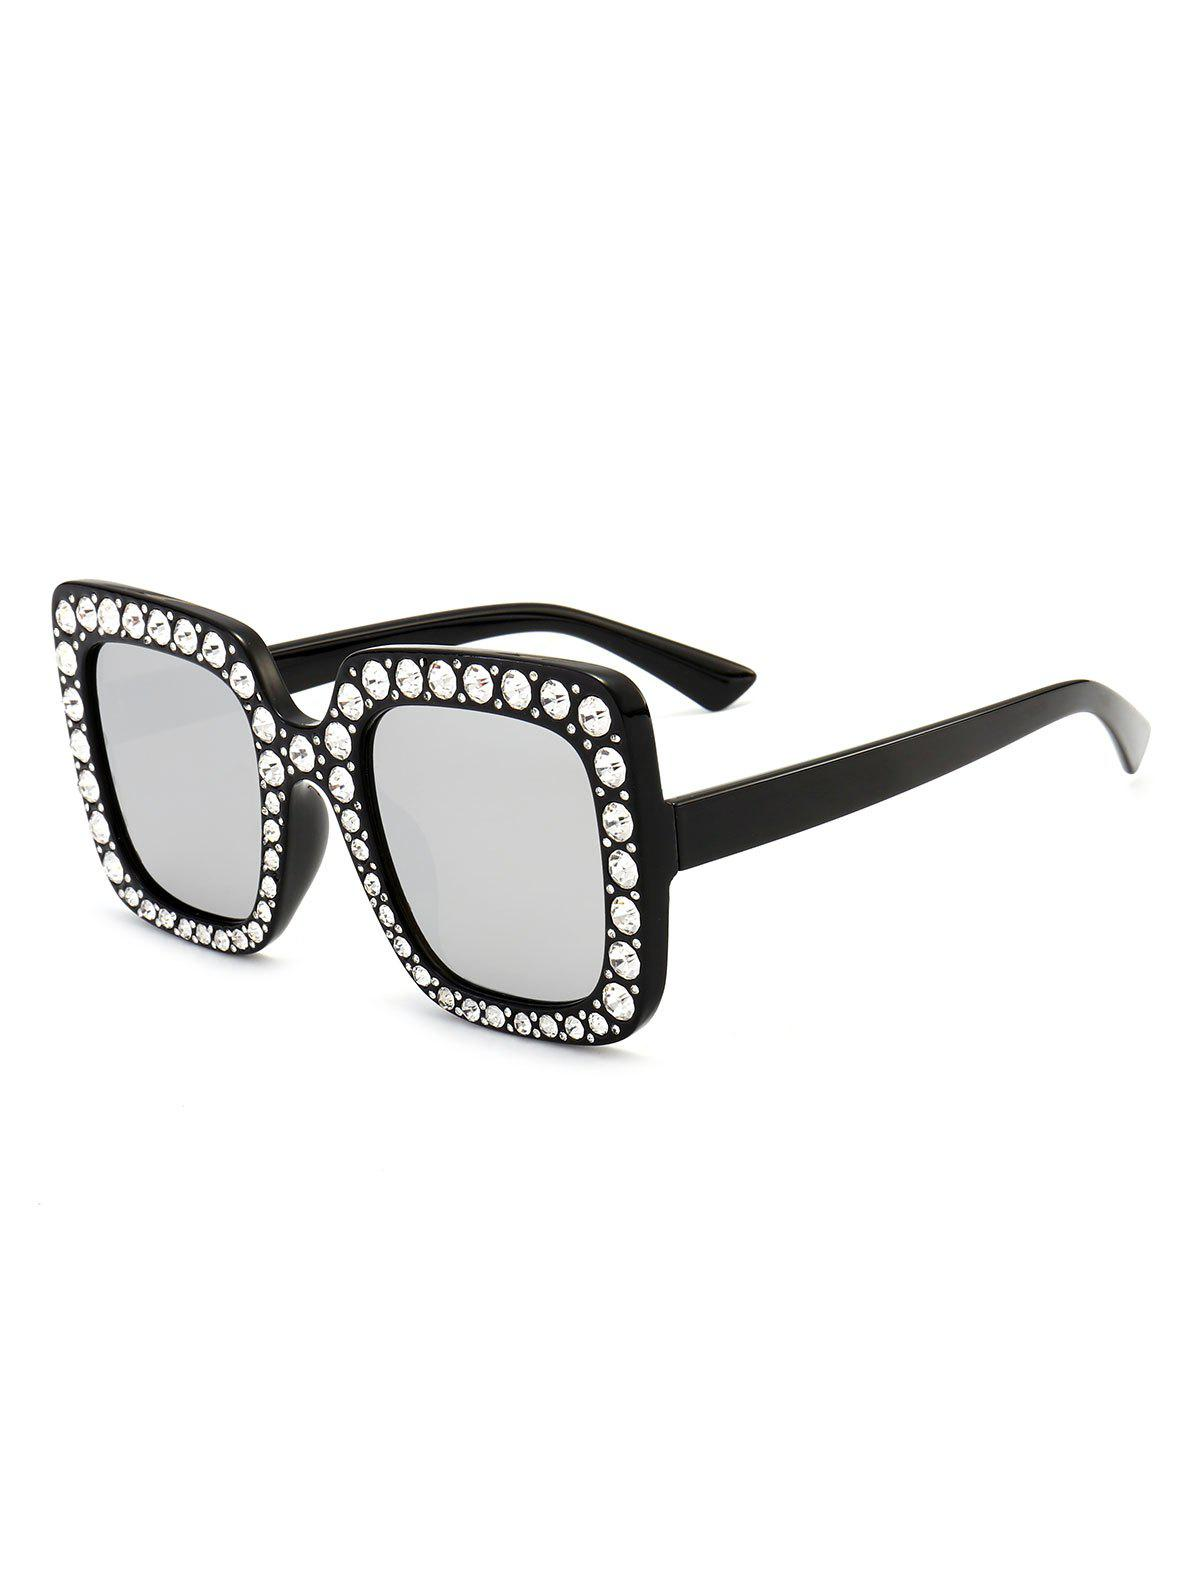 Anti UV Rhinestone Decorated Oversized Square Sunglasses - BLACK/MERCURY